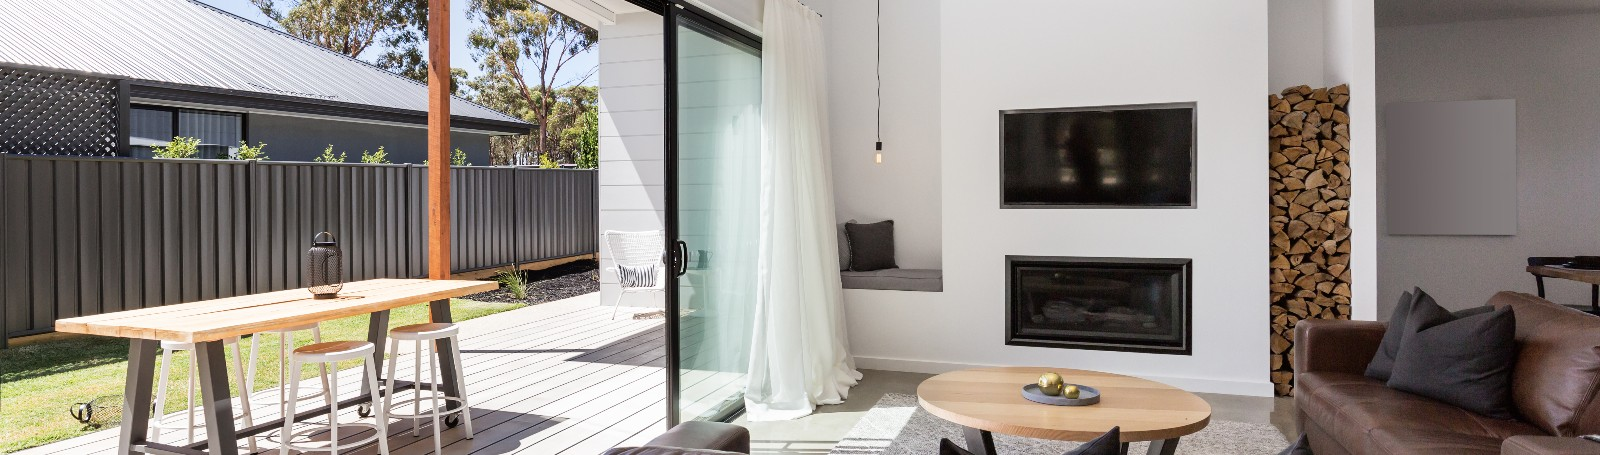 Home Extensions in Adelaide